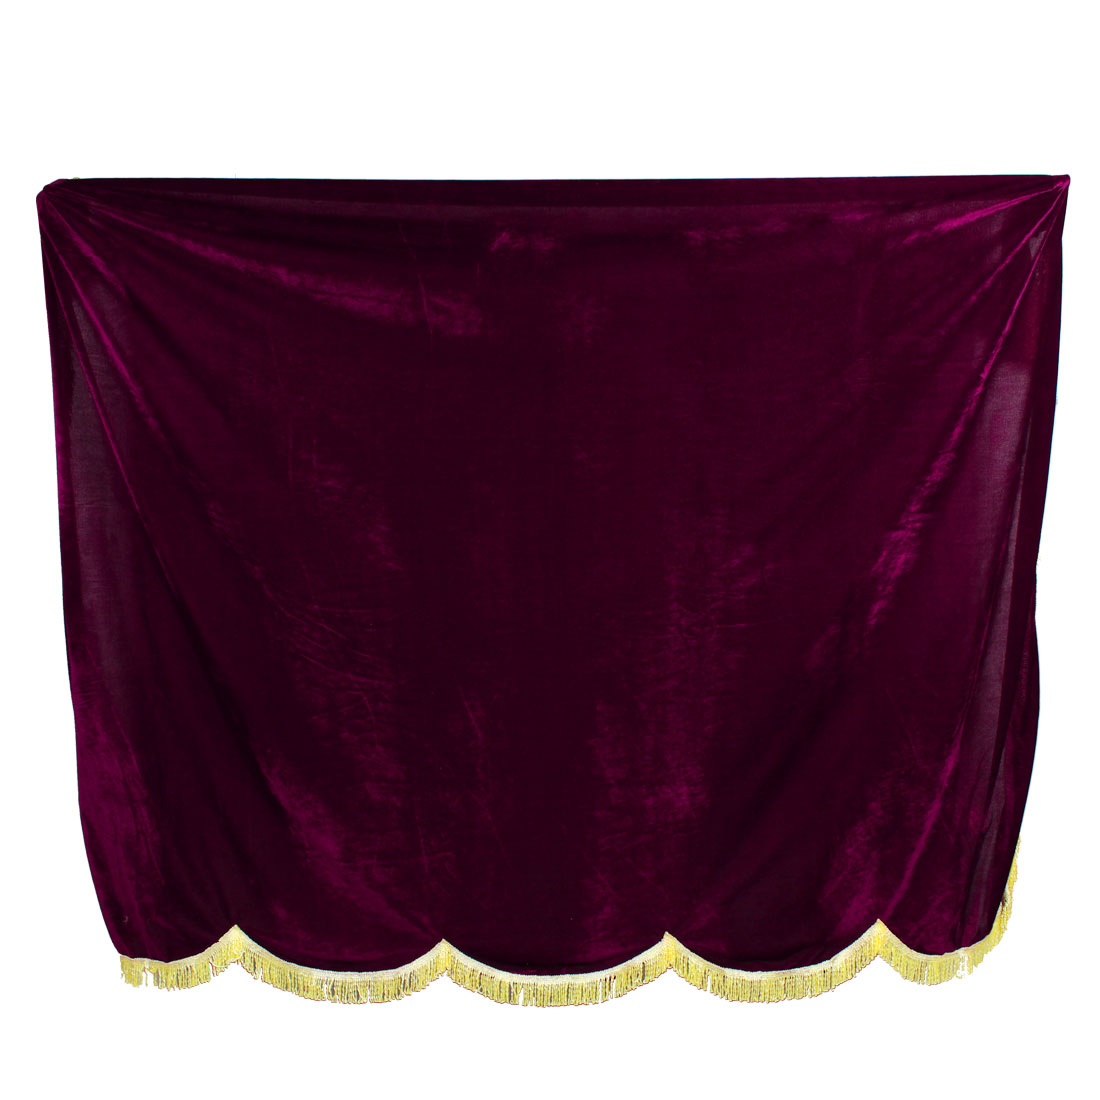 Tassels Trim Velet Overlay Piano Full Cover Dark Burgundy 1.53mx1.48m